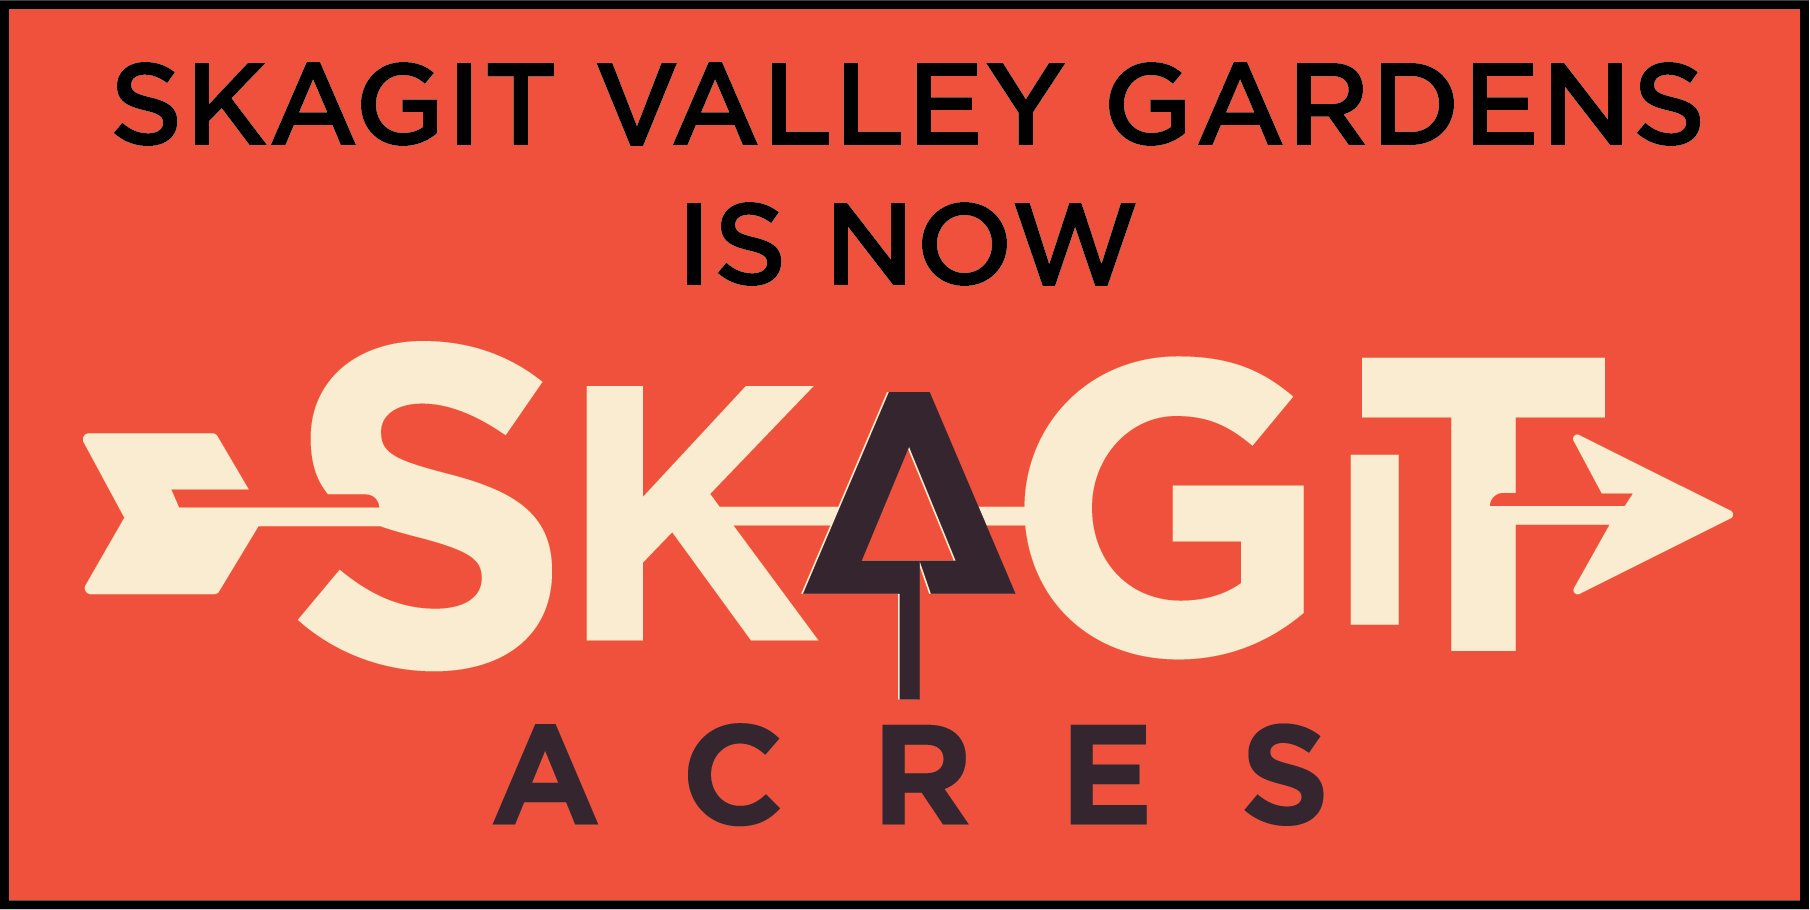 Skagit Valley Gardens is now Skagit Acres